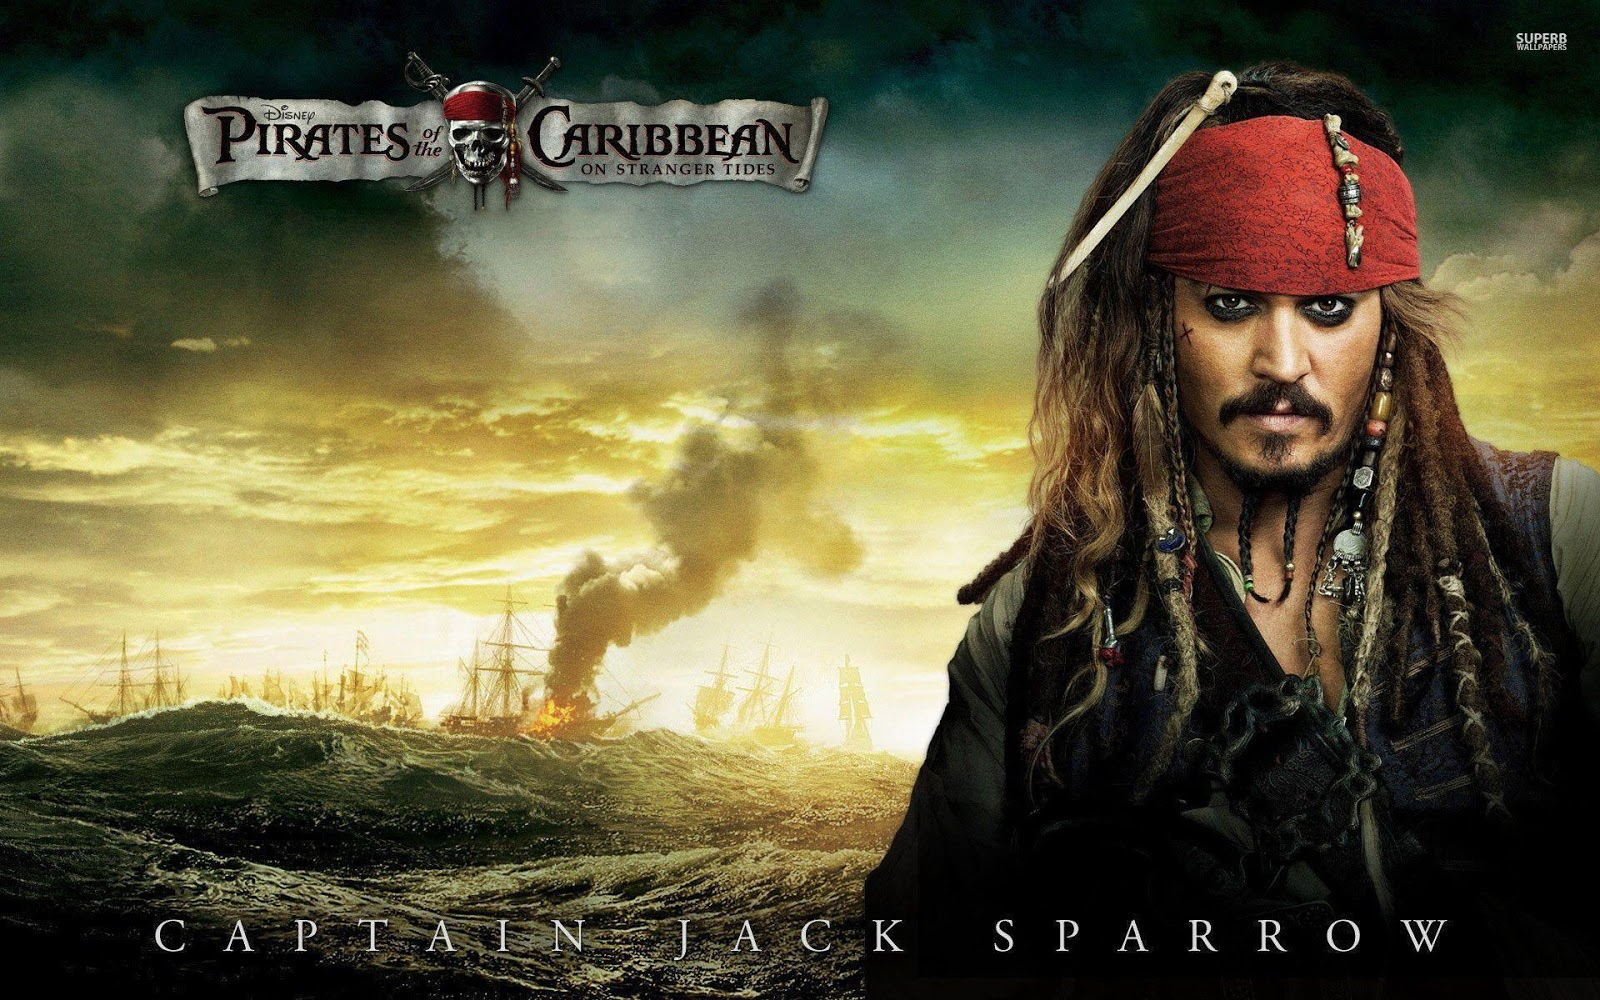 Captain Jack Sparrow Wallpapers 4K, Full Hd , Hd, Download -3292